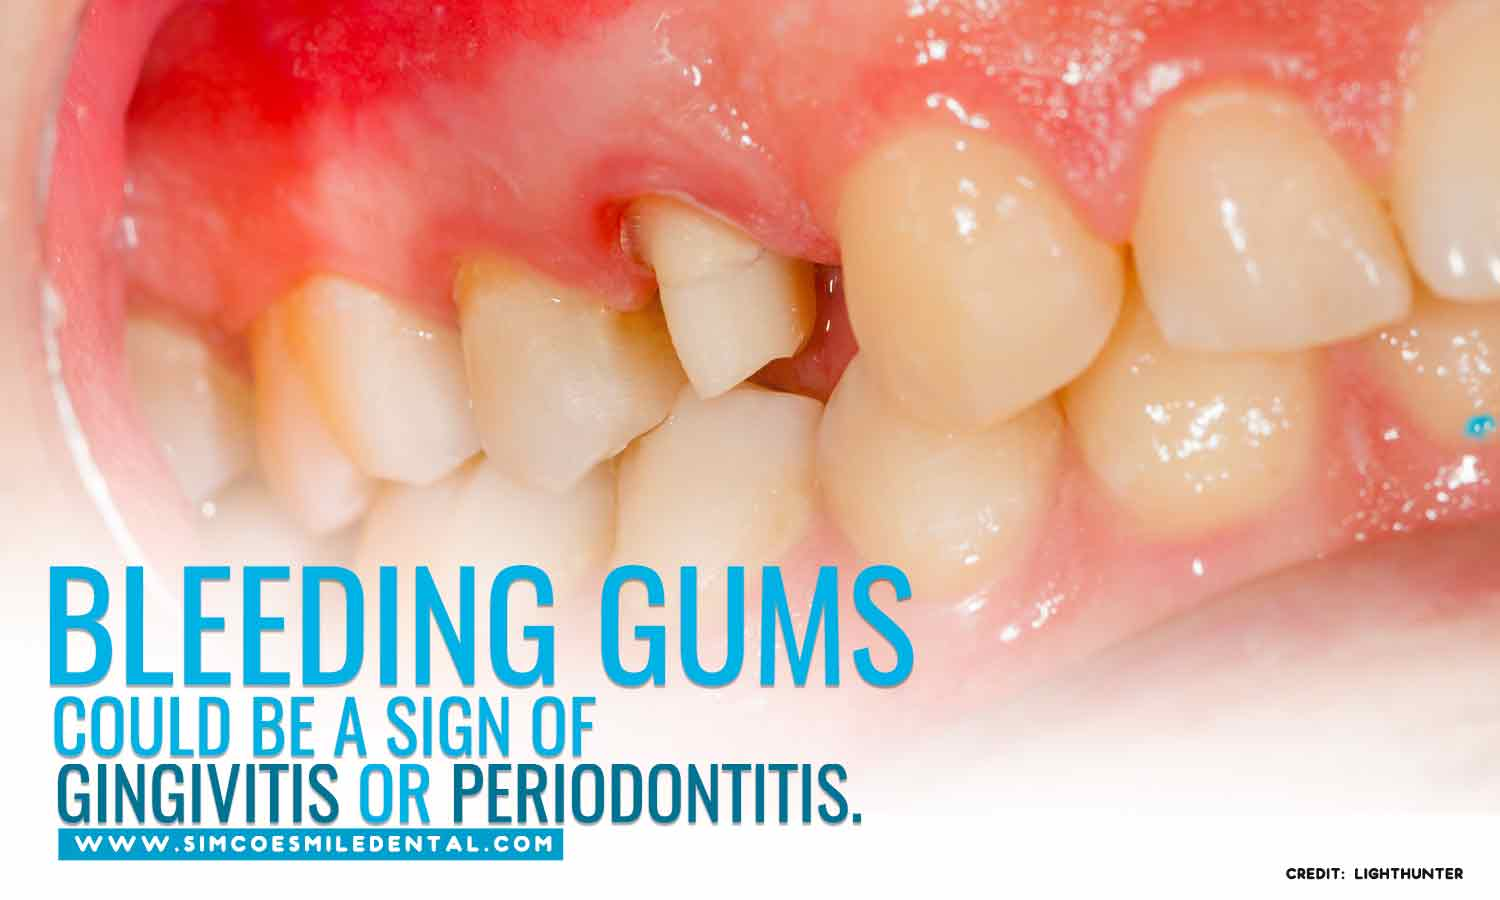 Bleeding-gums-could-be-a-sign-of-gingivitis-or-periodontitis Dental Problems You Should Never Ignore